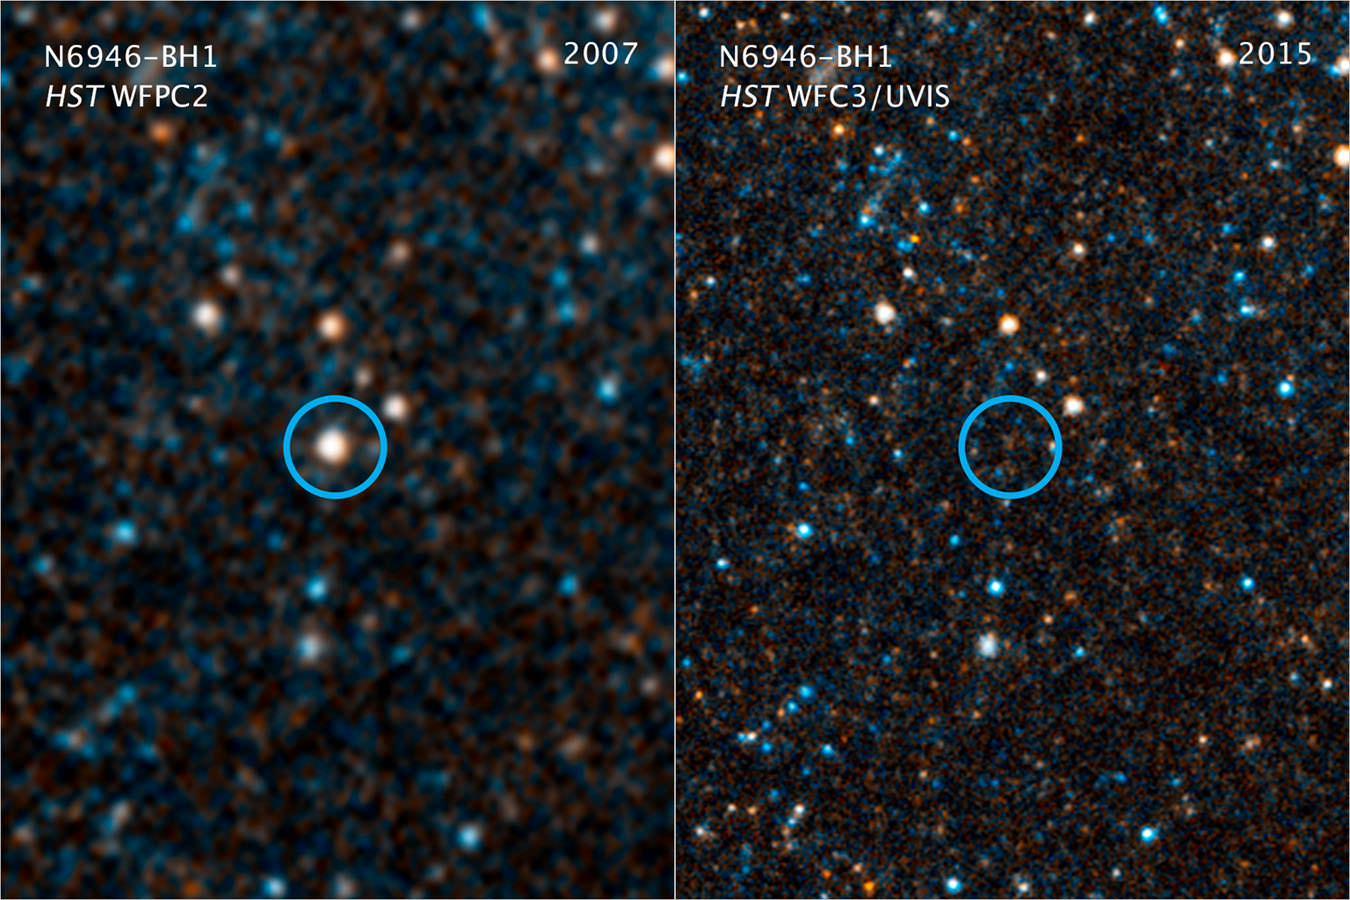 Visible-light and near-infrared photos from NASA's Hubble Space Telescope showing the giant star N6946-BH1 before and after it vanished out of sight by imploding to form a black hole. - Image Credit: NASA/ESA/C. Kochanek (OSU)